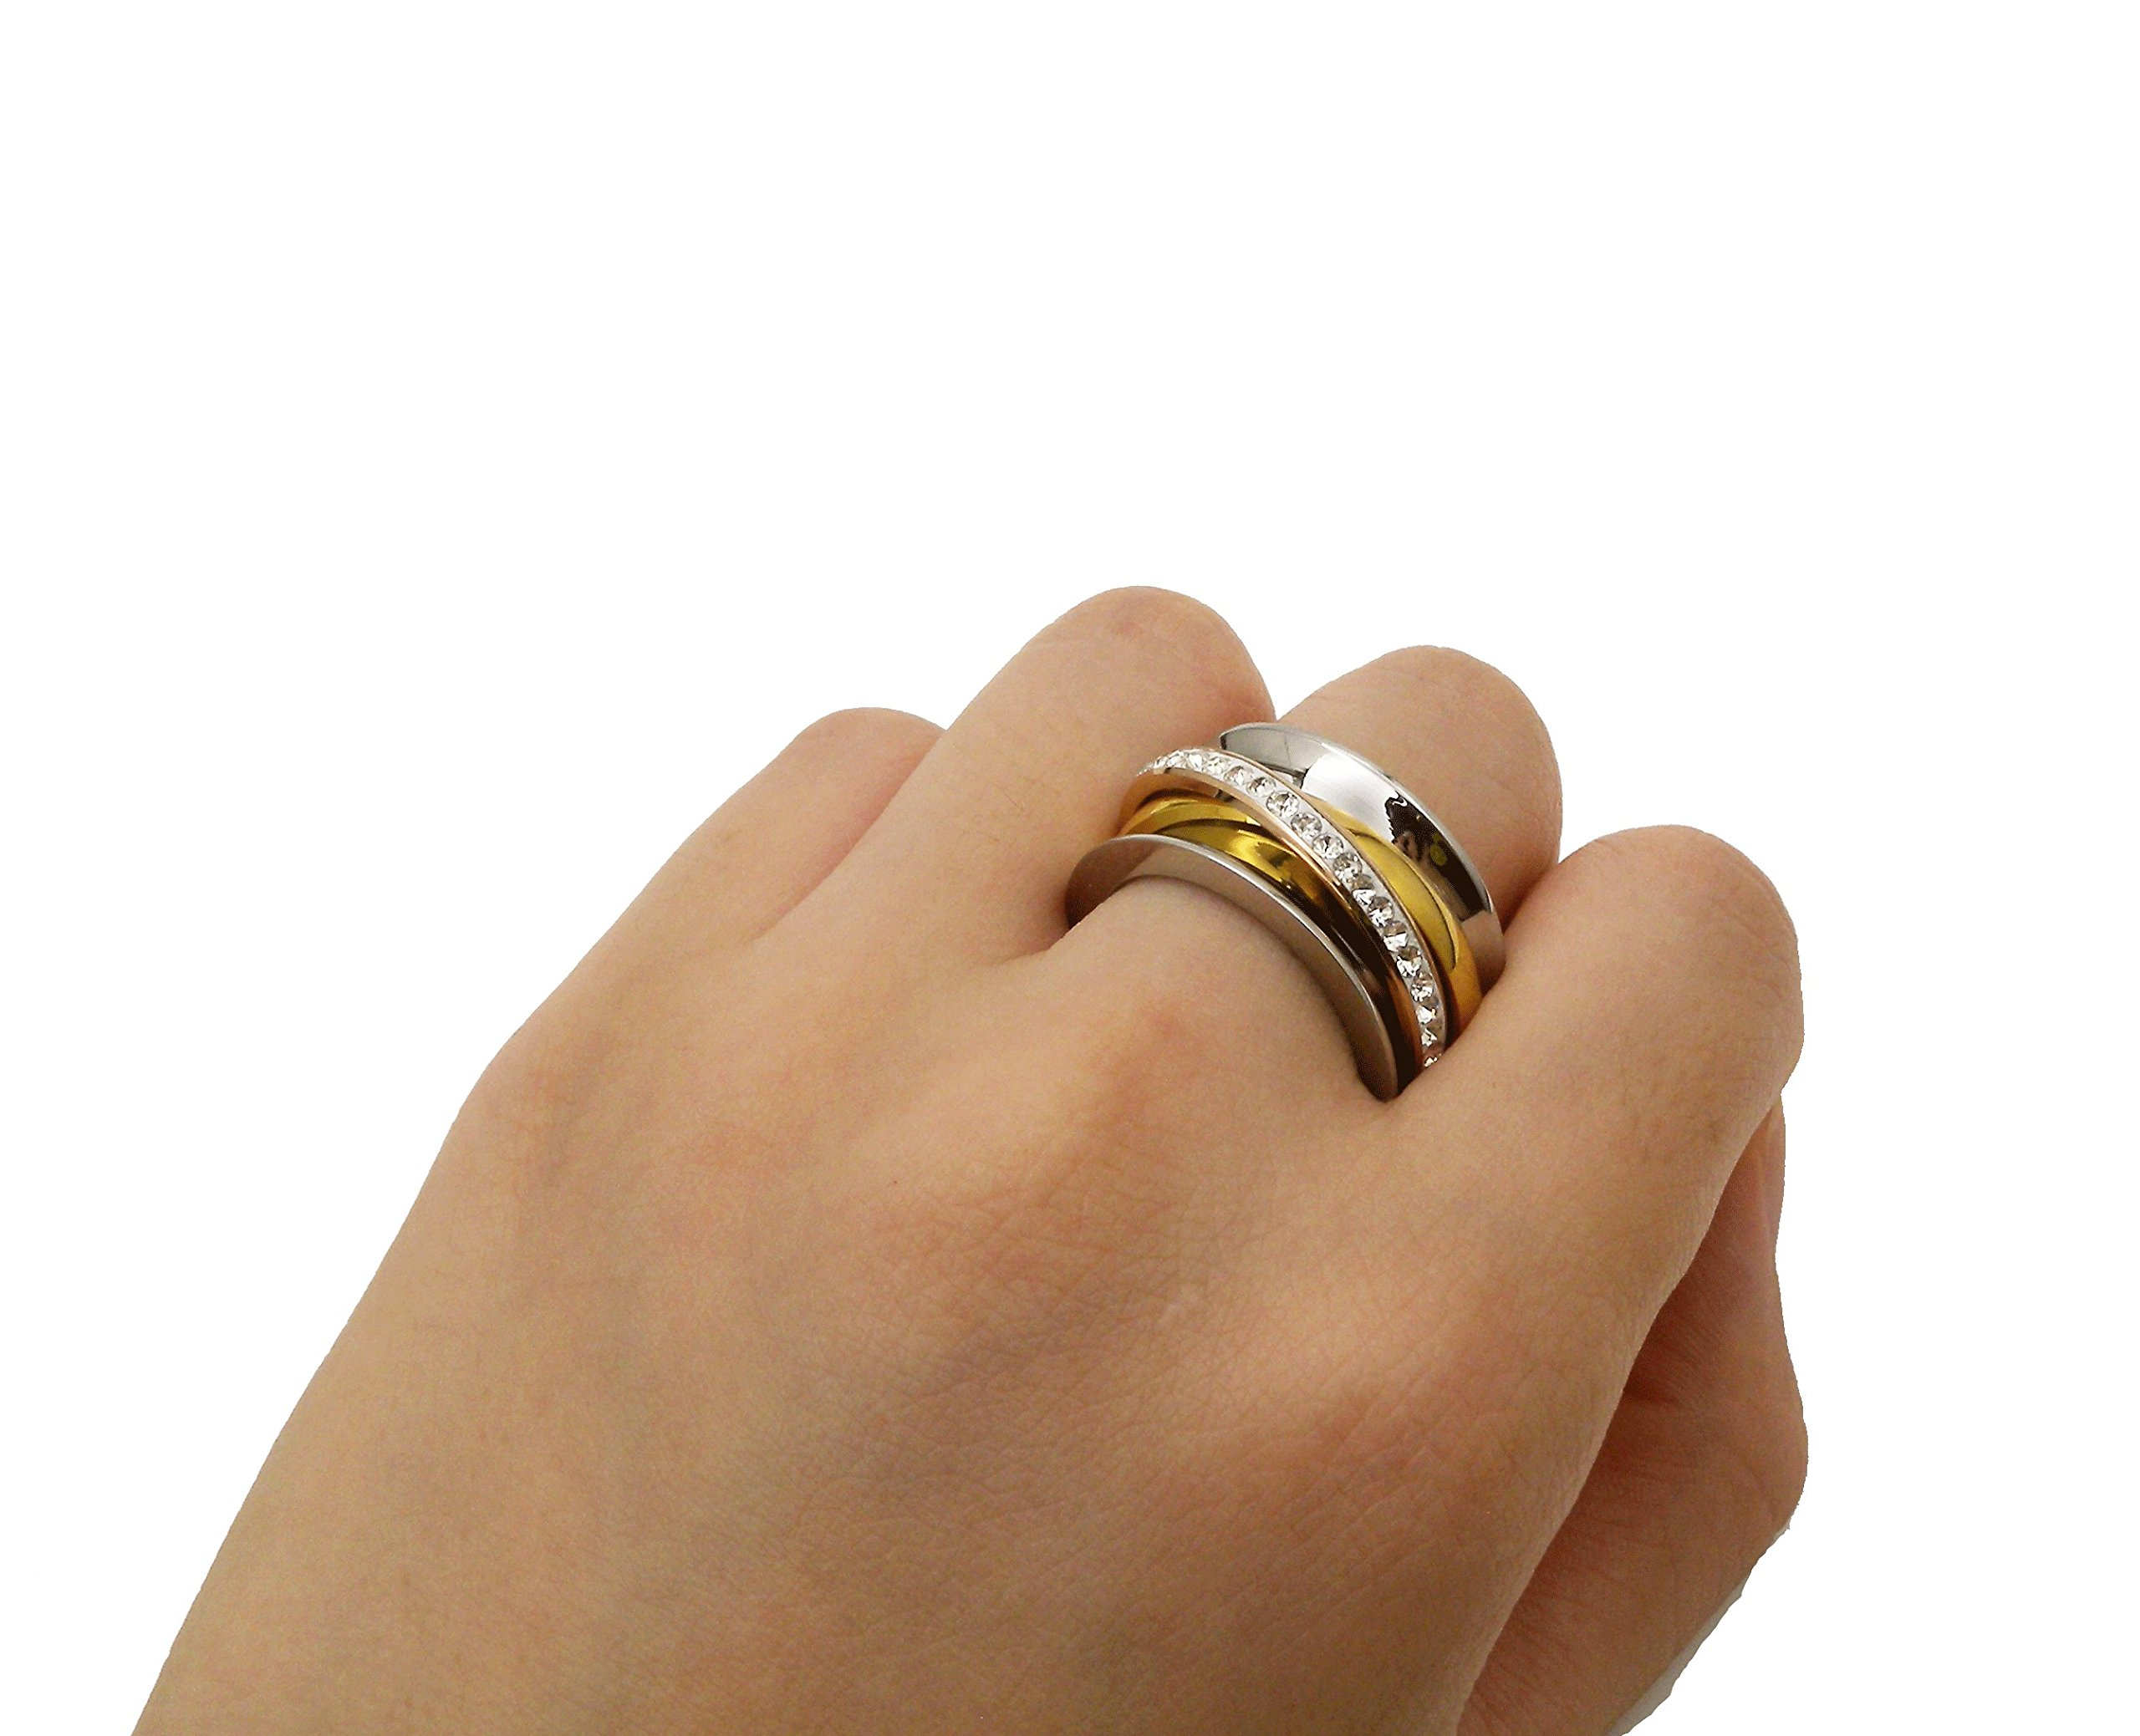 Charlotte Stainless Steel Trinity Ring Tri Rolling Wedding Band Gold Rose Silver Womens Statement Ring